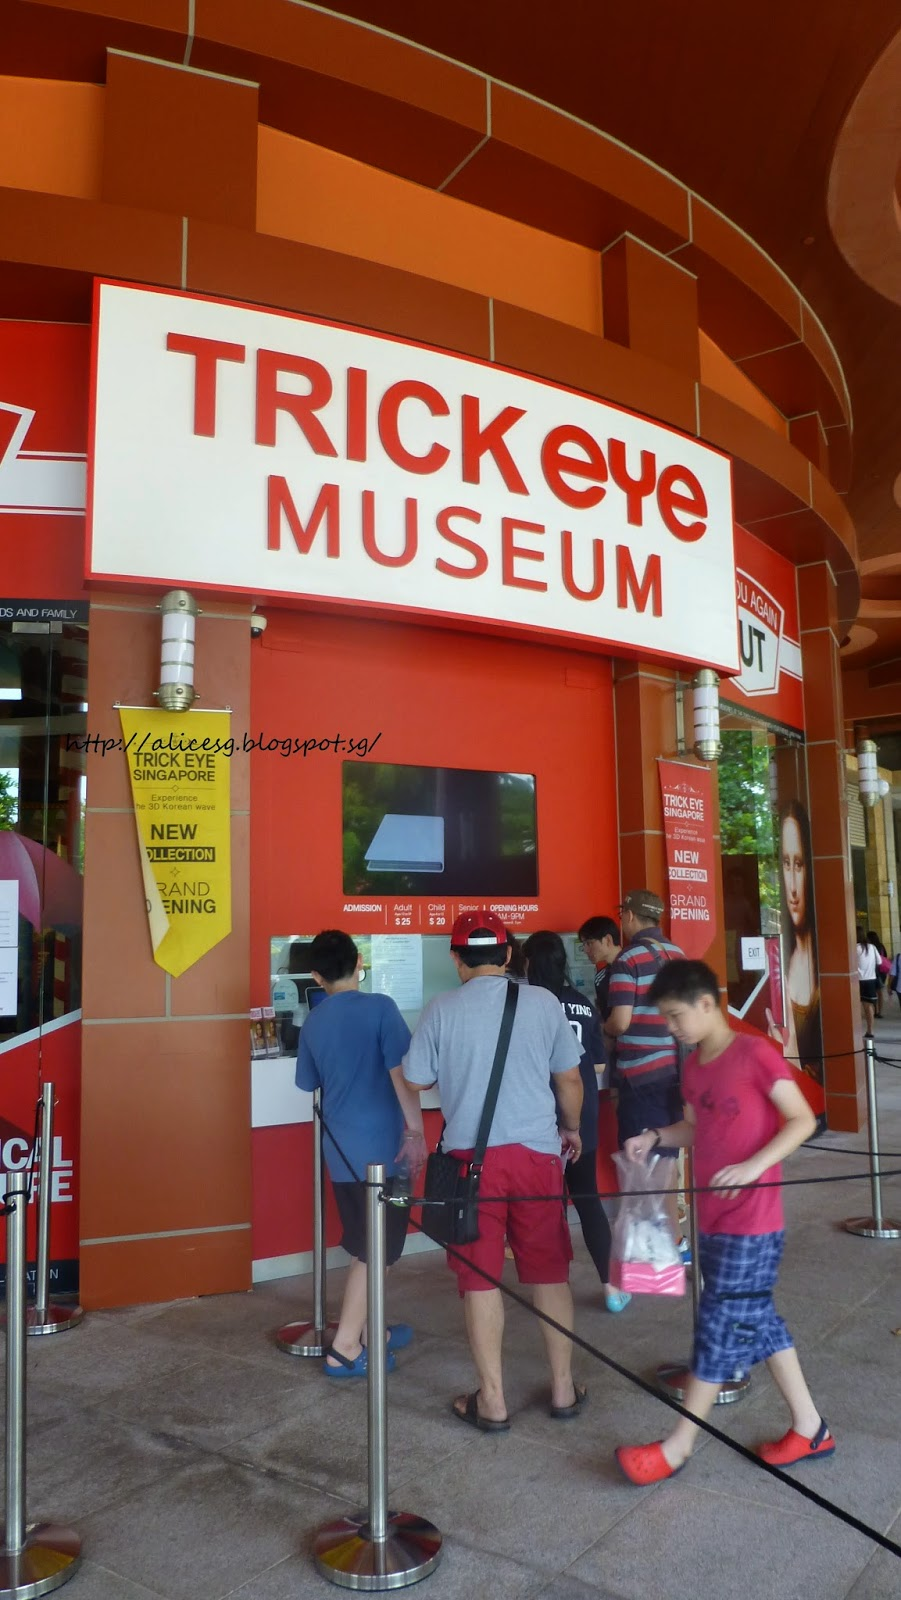 Alicesg Singaporemyhome Trick Eye Museum Singapore At Resort World Tiket Trickeye My Best Friend And I Had A Blast Of Time Sentosa Although We Are In Our Fifites But Really Very Young Heart